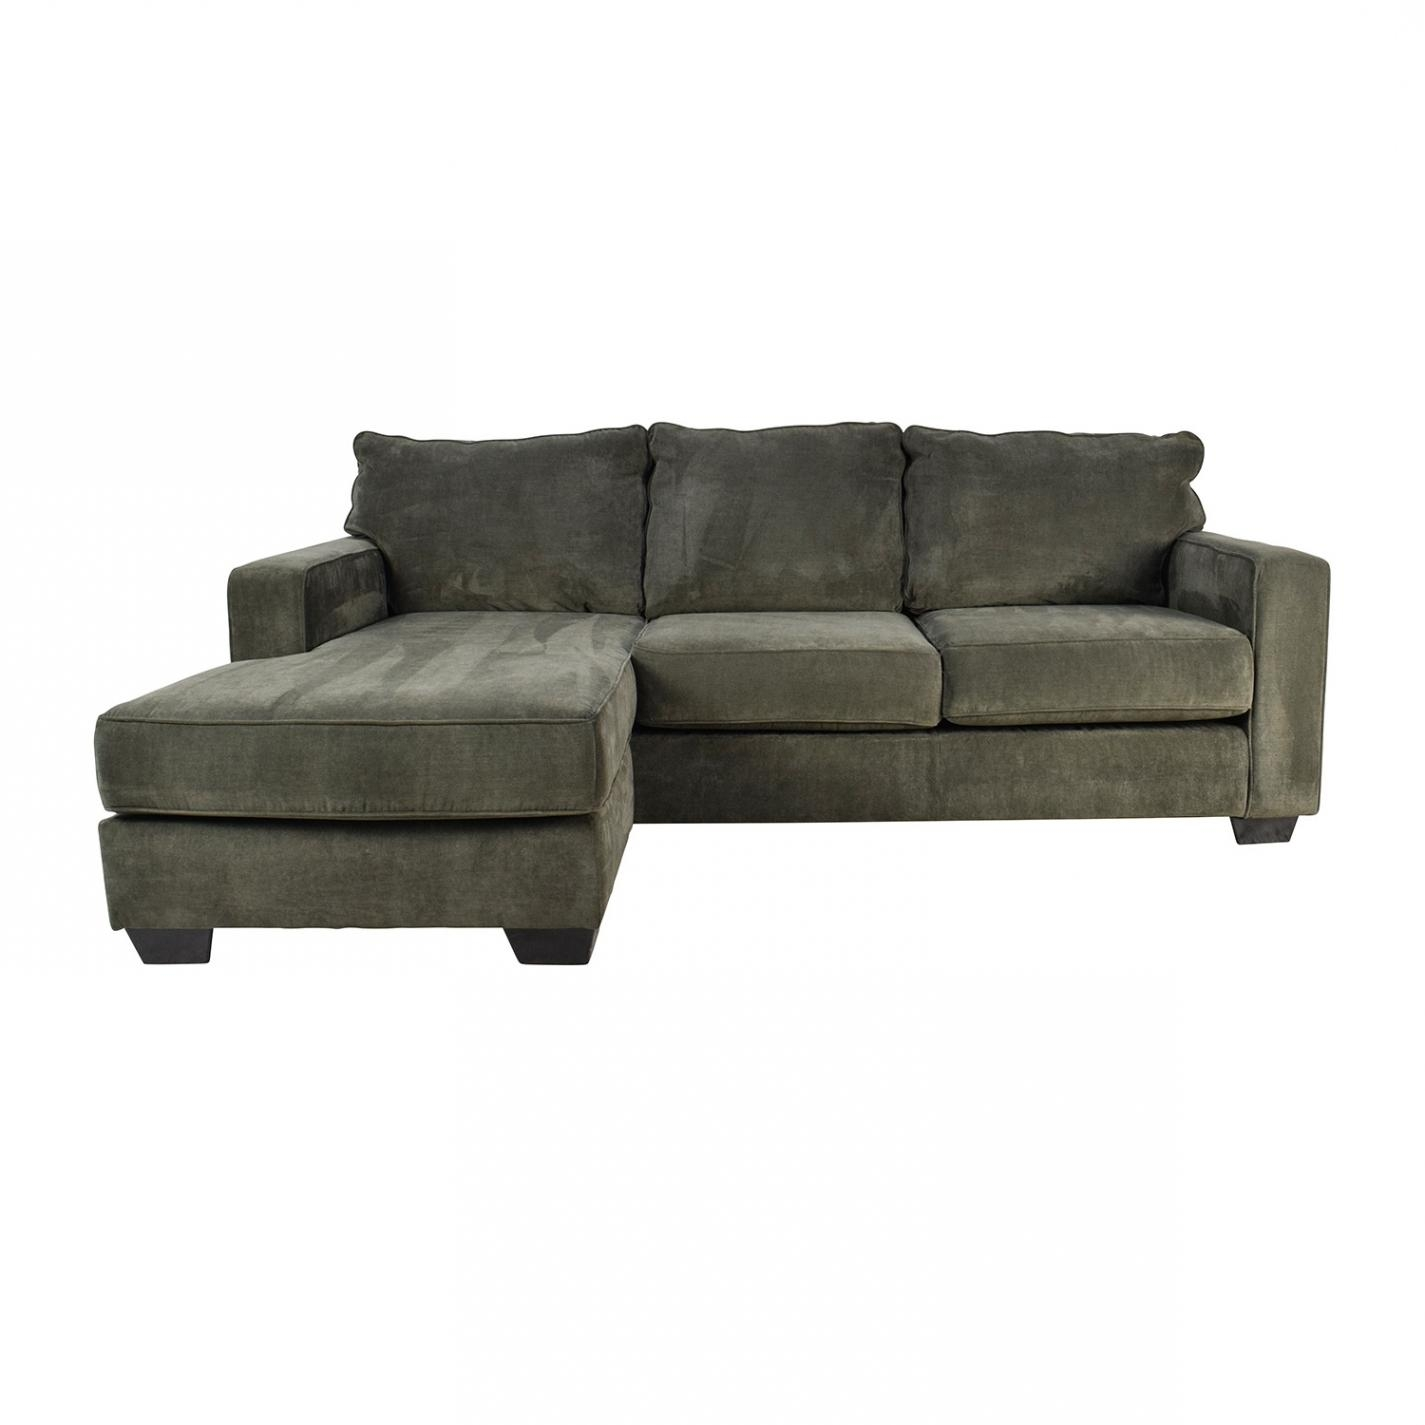 Homey Design Hd 1302 Sf Casabella Euro Sofa | Tehranmix Decoration With Regard To Euro Sofas (Image 18 of 20)